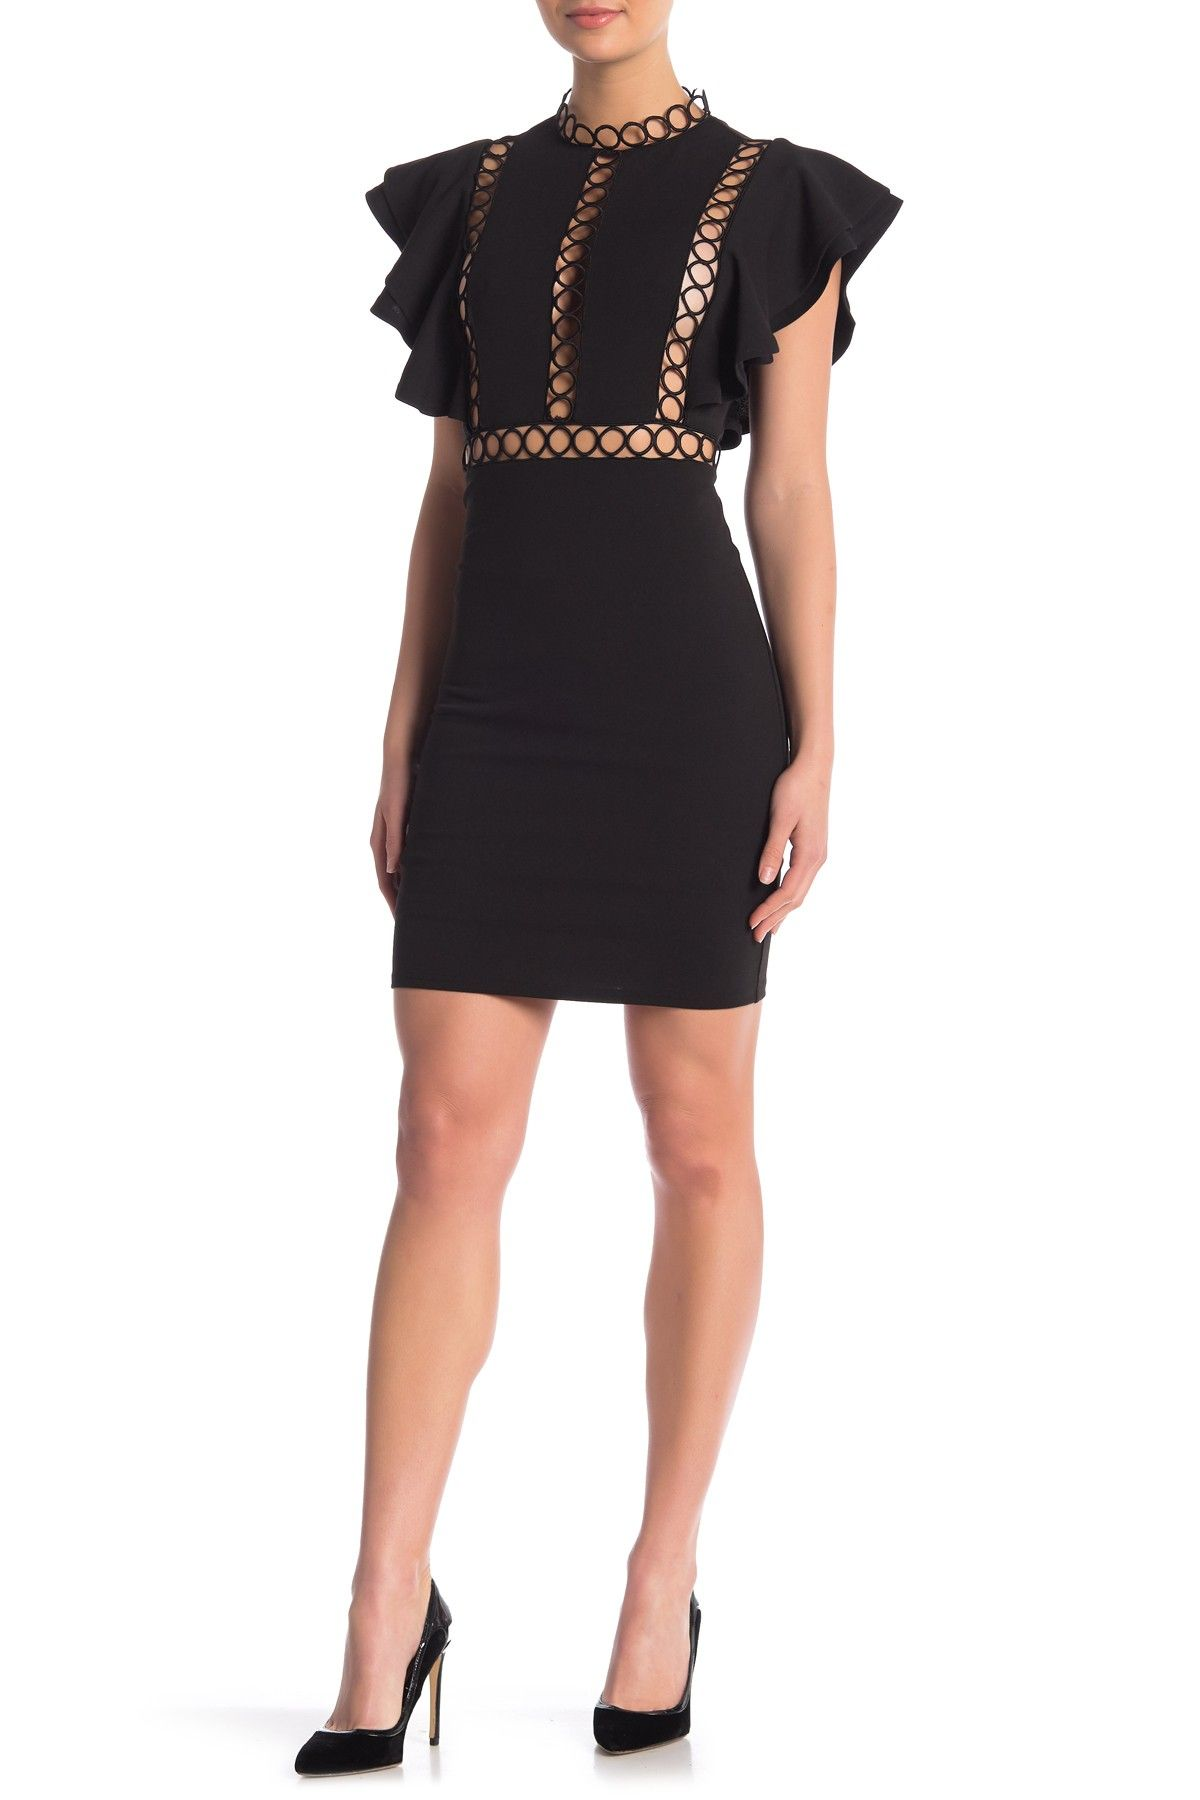 d770637d2f Ruffle Cap Sleeve Cutout Dress by Love by Design on  nordstrom rack